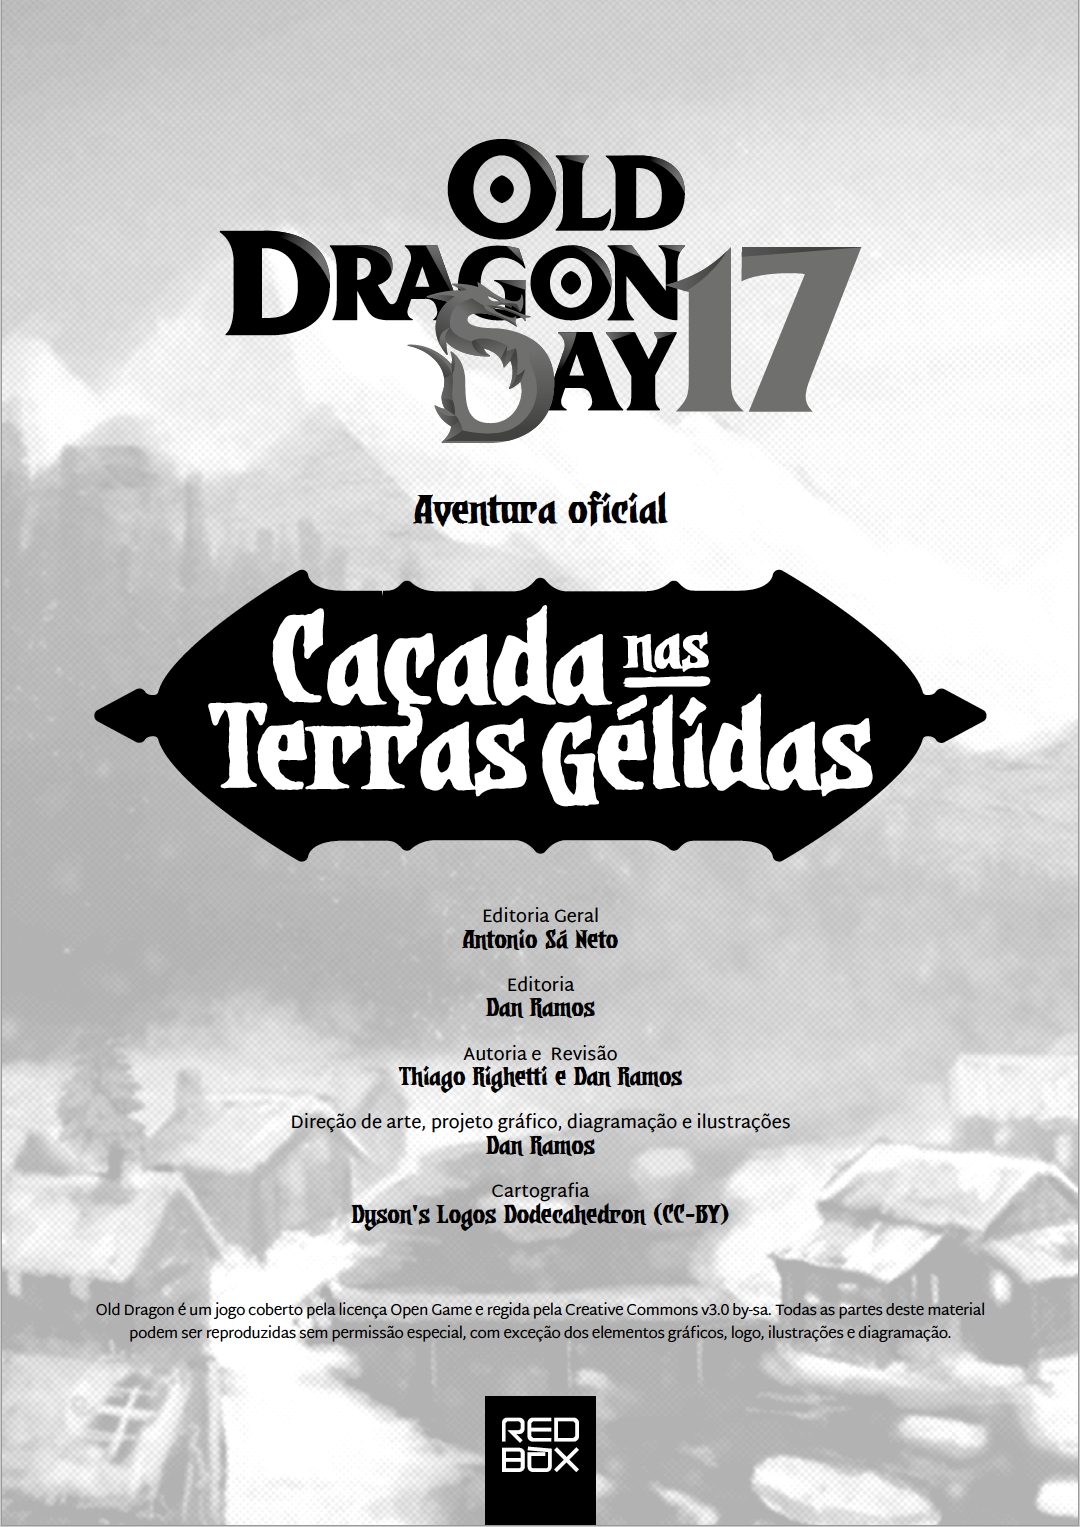 Aventura oficial para o OD Day 2017 de Old Dragon